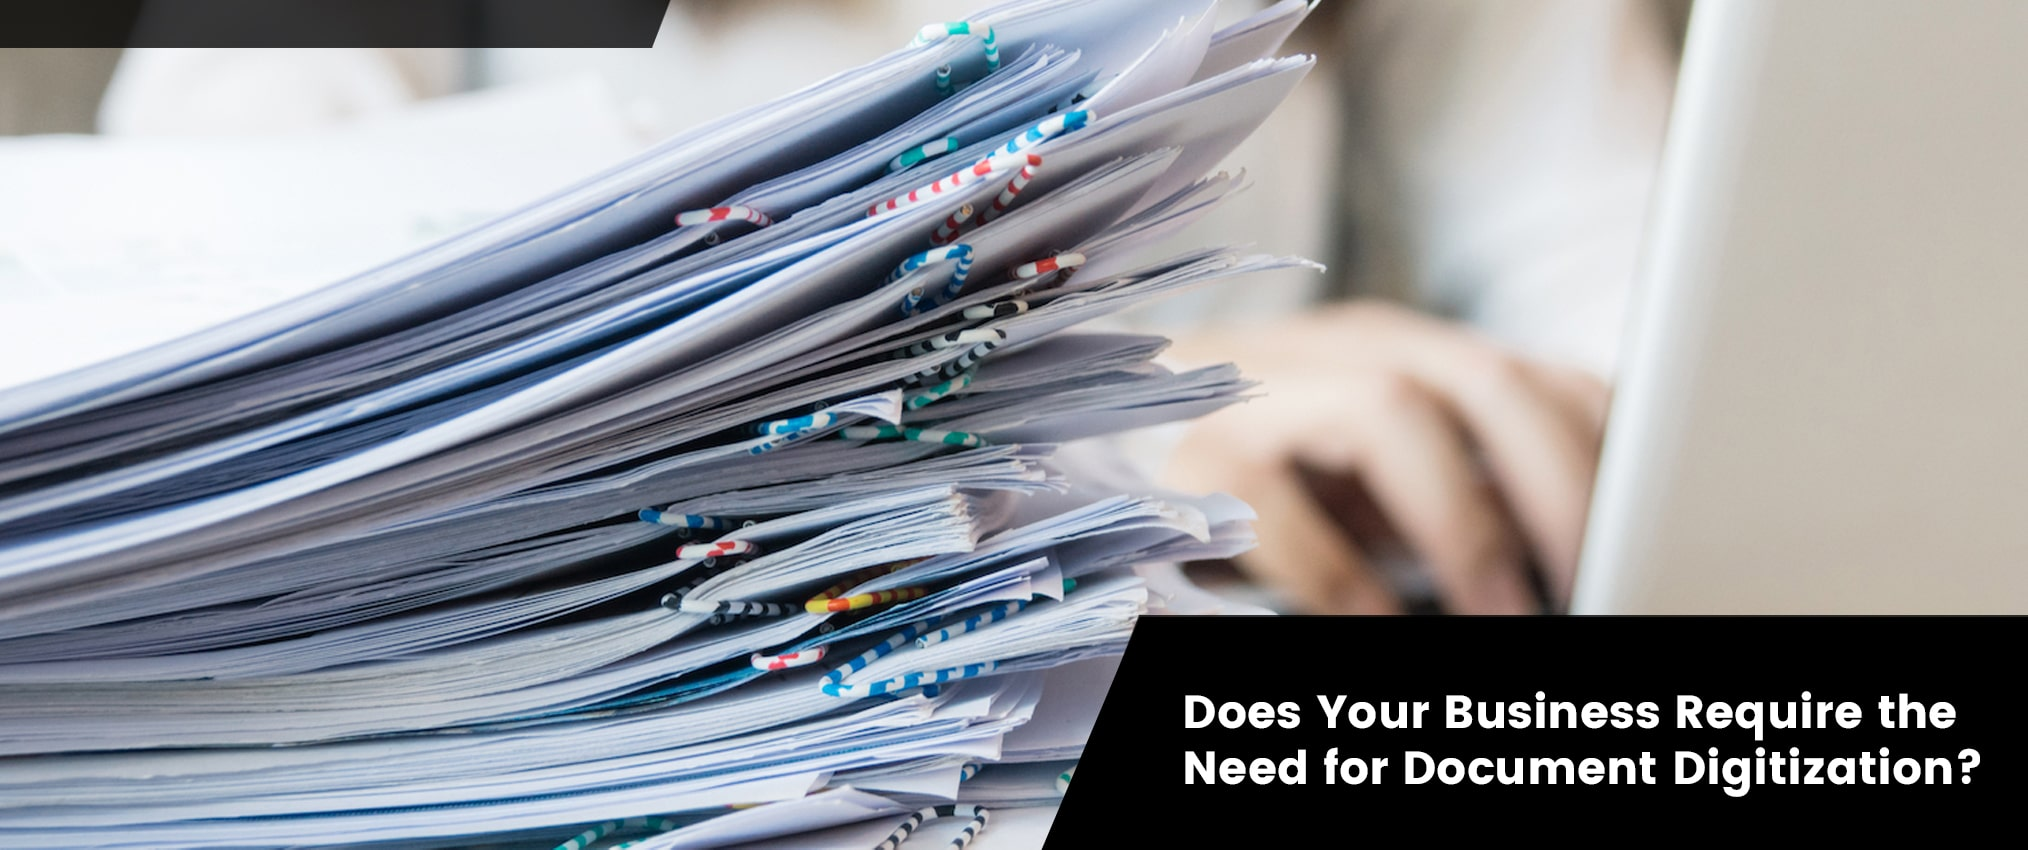 document digitization for your business